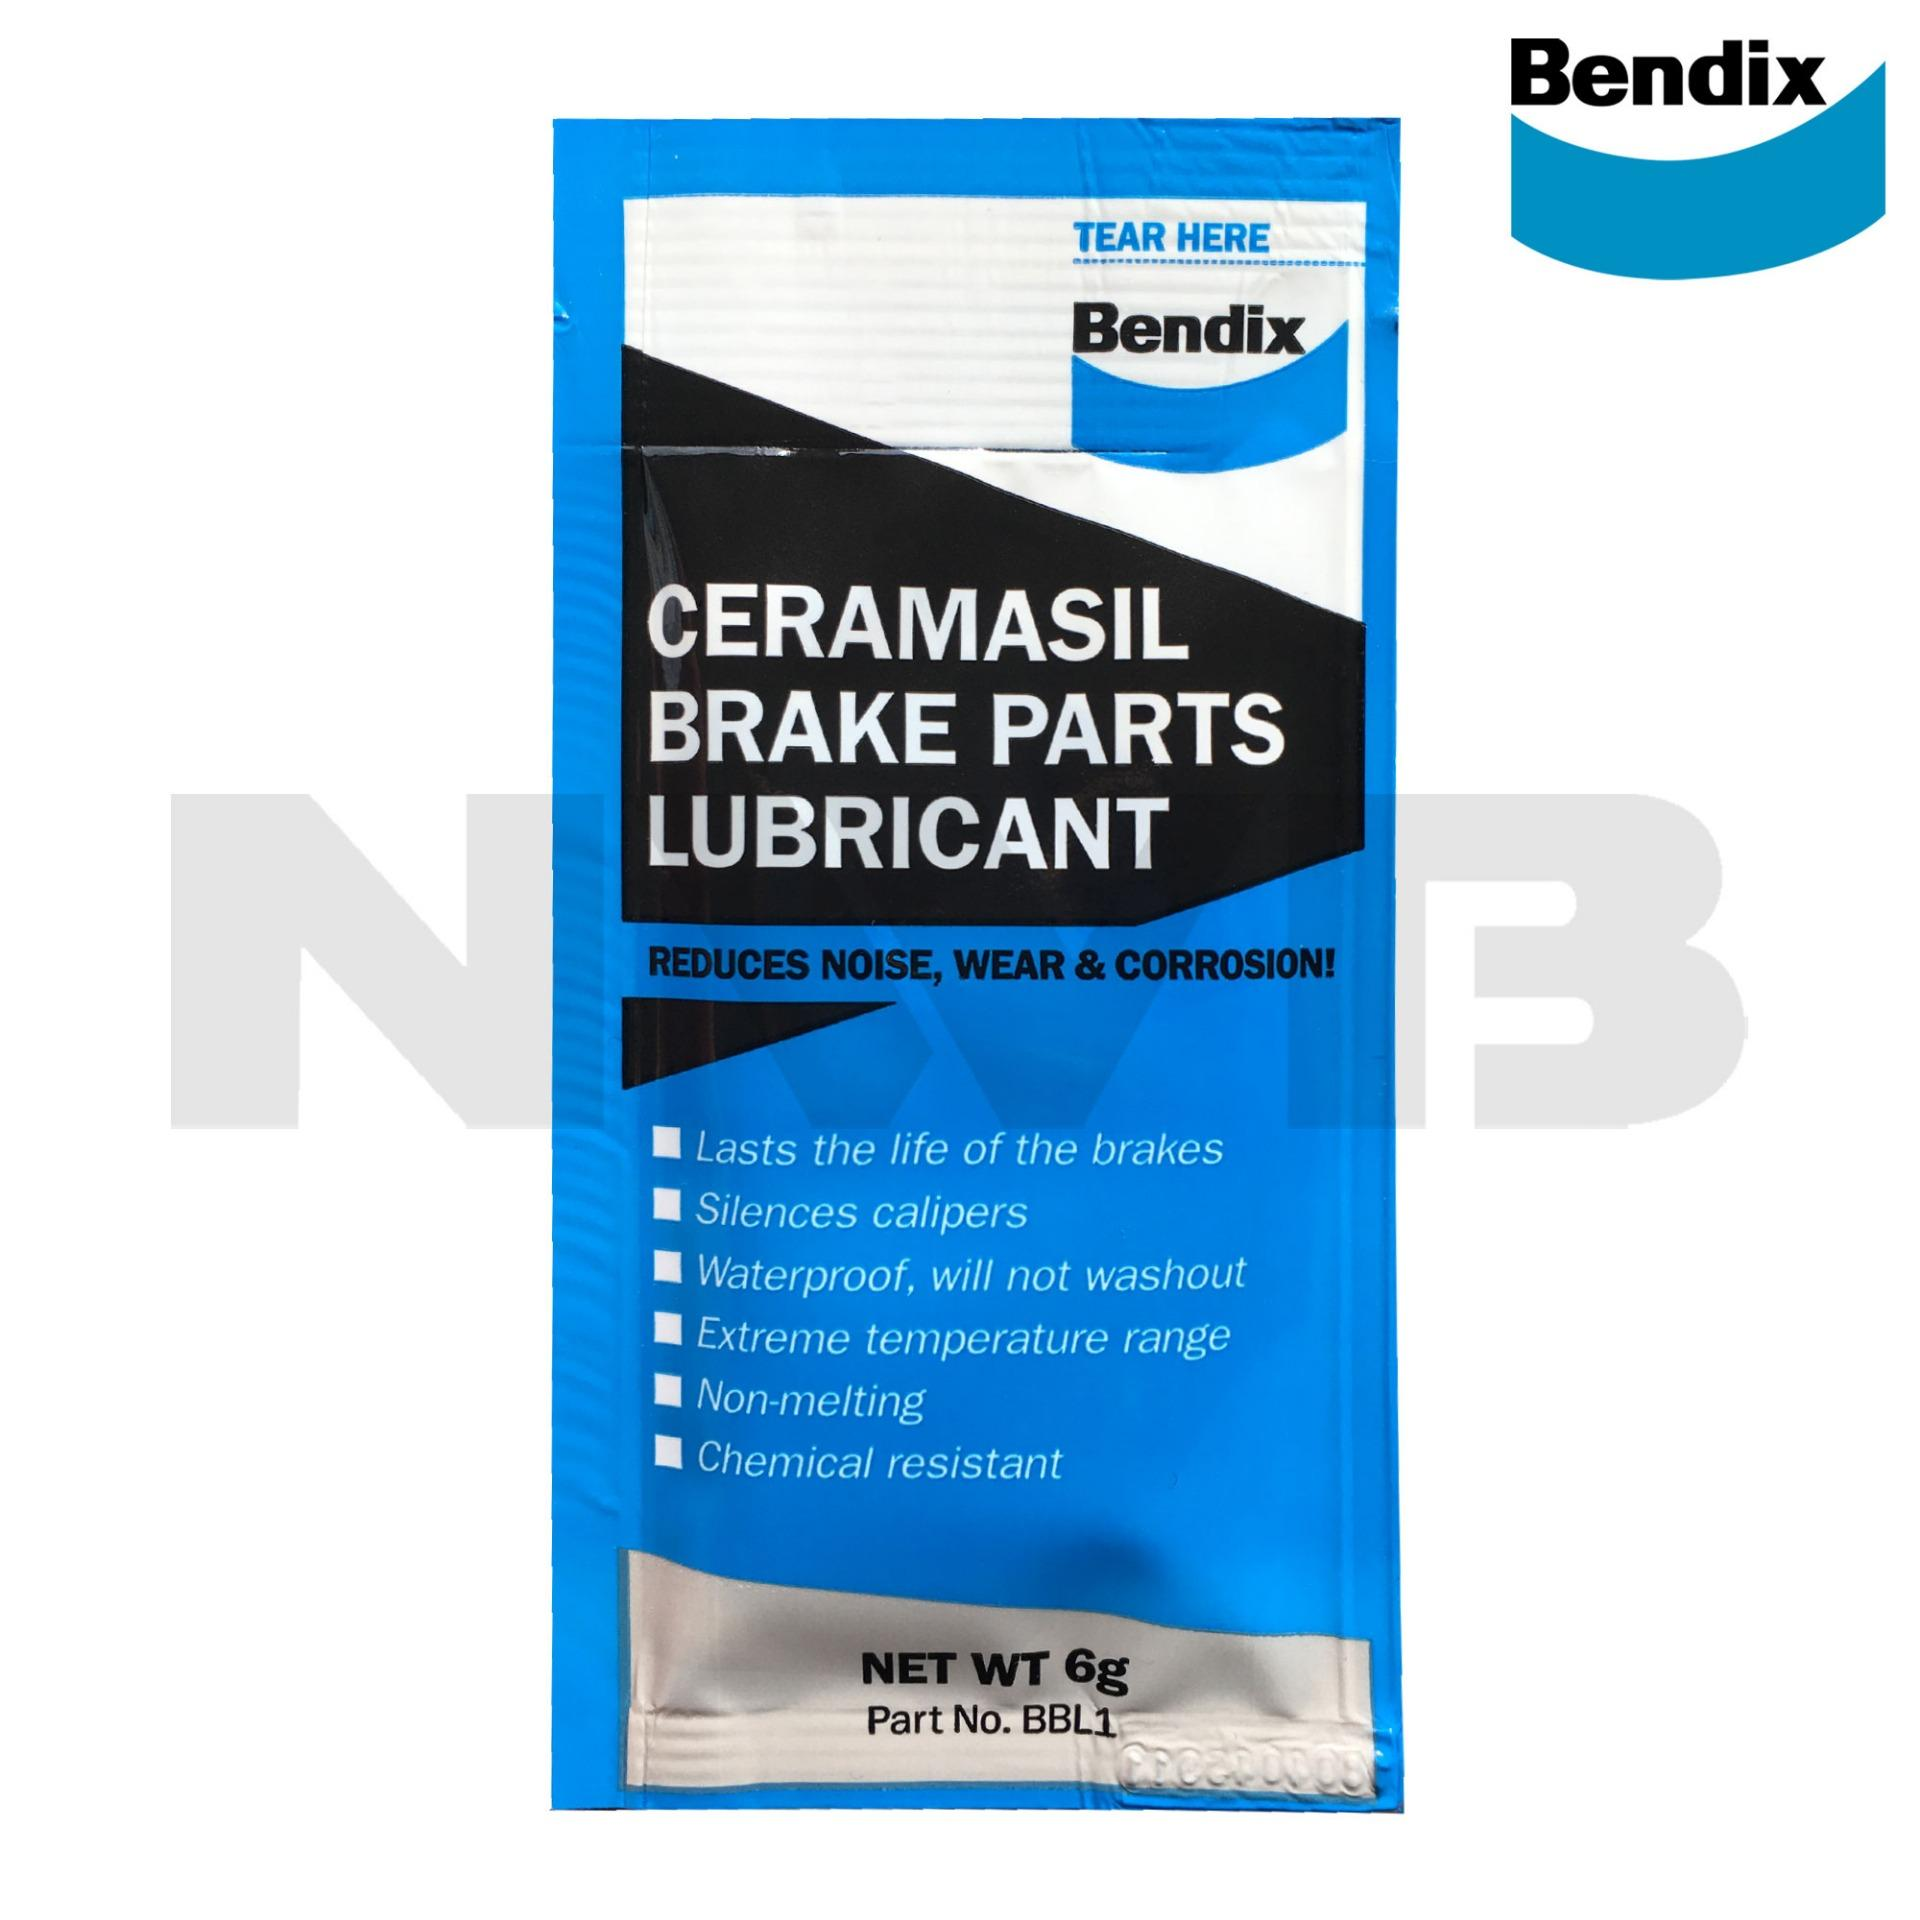 Car Lubricant For Sale Auto Greaser Online Brands Prices Grease Pelumas Gear Plastik Bendix Ceramic High Performance Synthetic 6 Grams Sachet